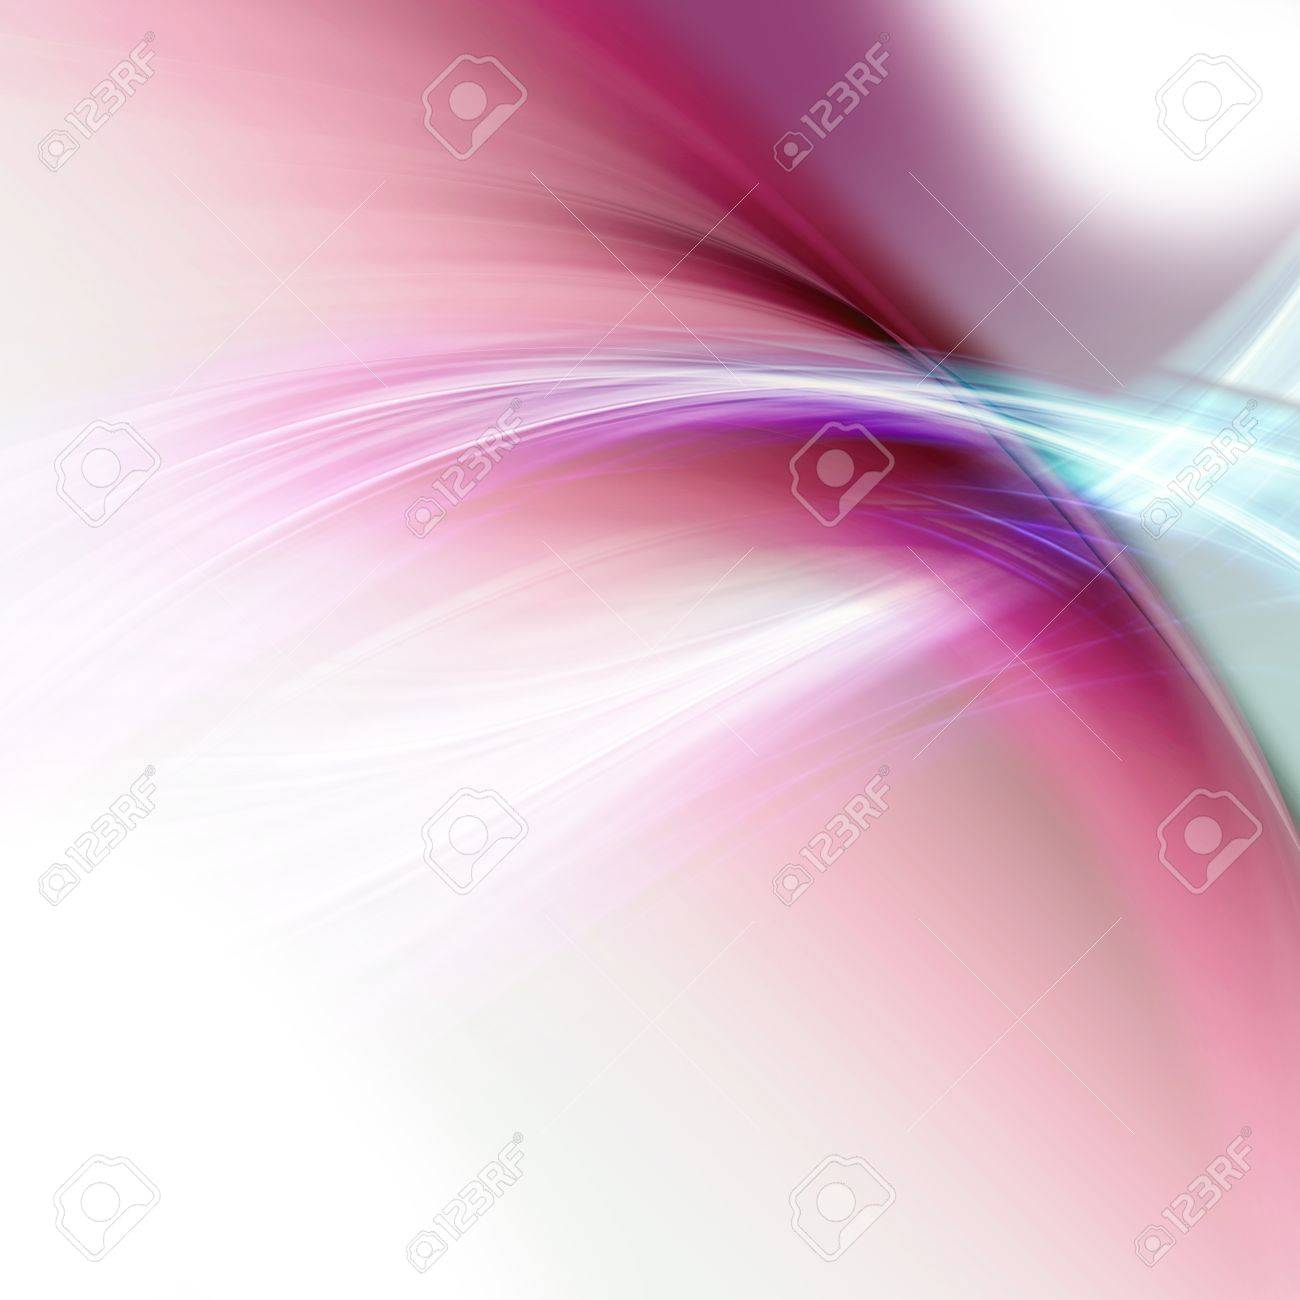 Abstract elegant background design with space for your text Stock Photo - 9204510